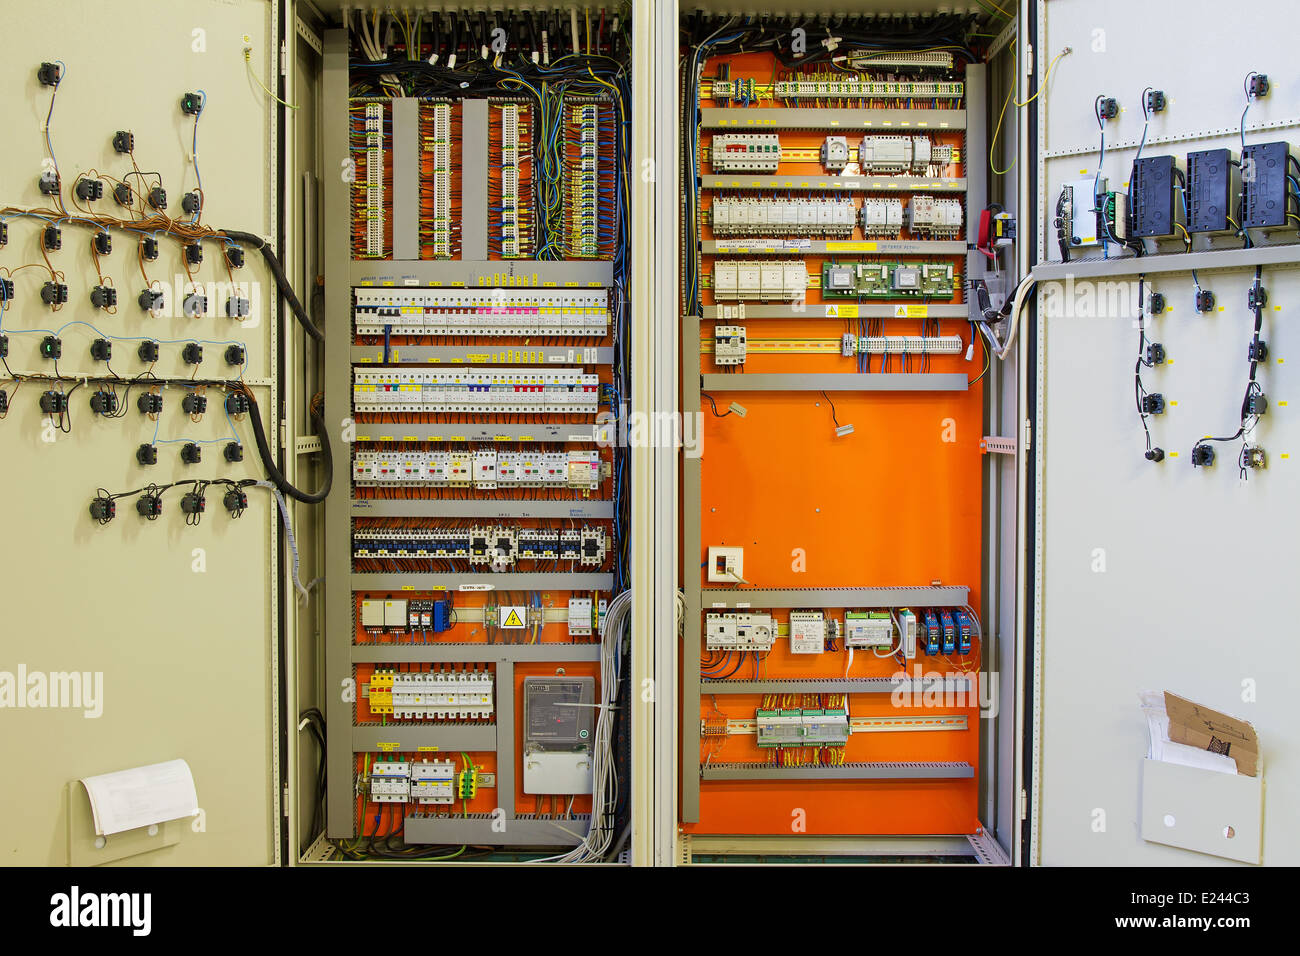 Conduit Box Stock Photos Images Alamy Wiring Distribution Board Uk Electricity With Wires And Circuit Breakers Fuse Image